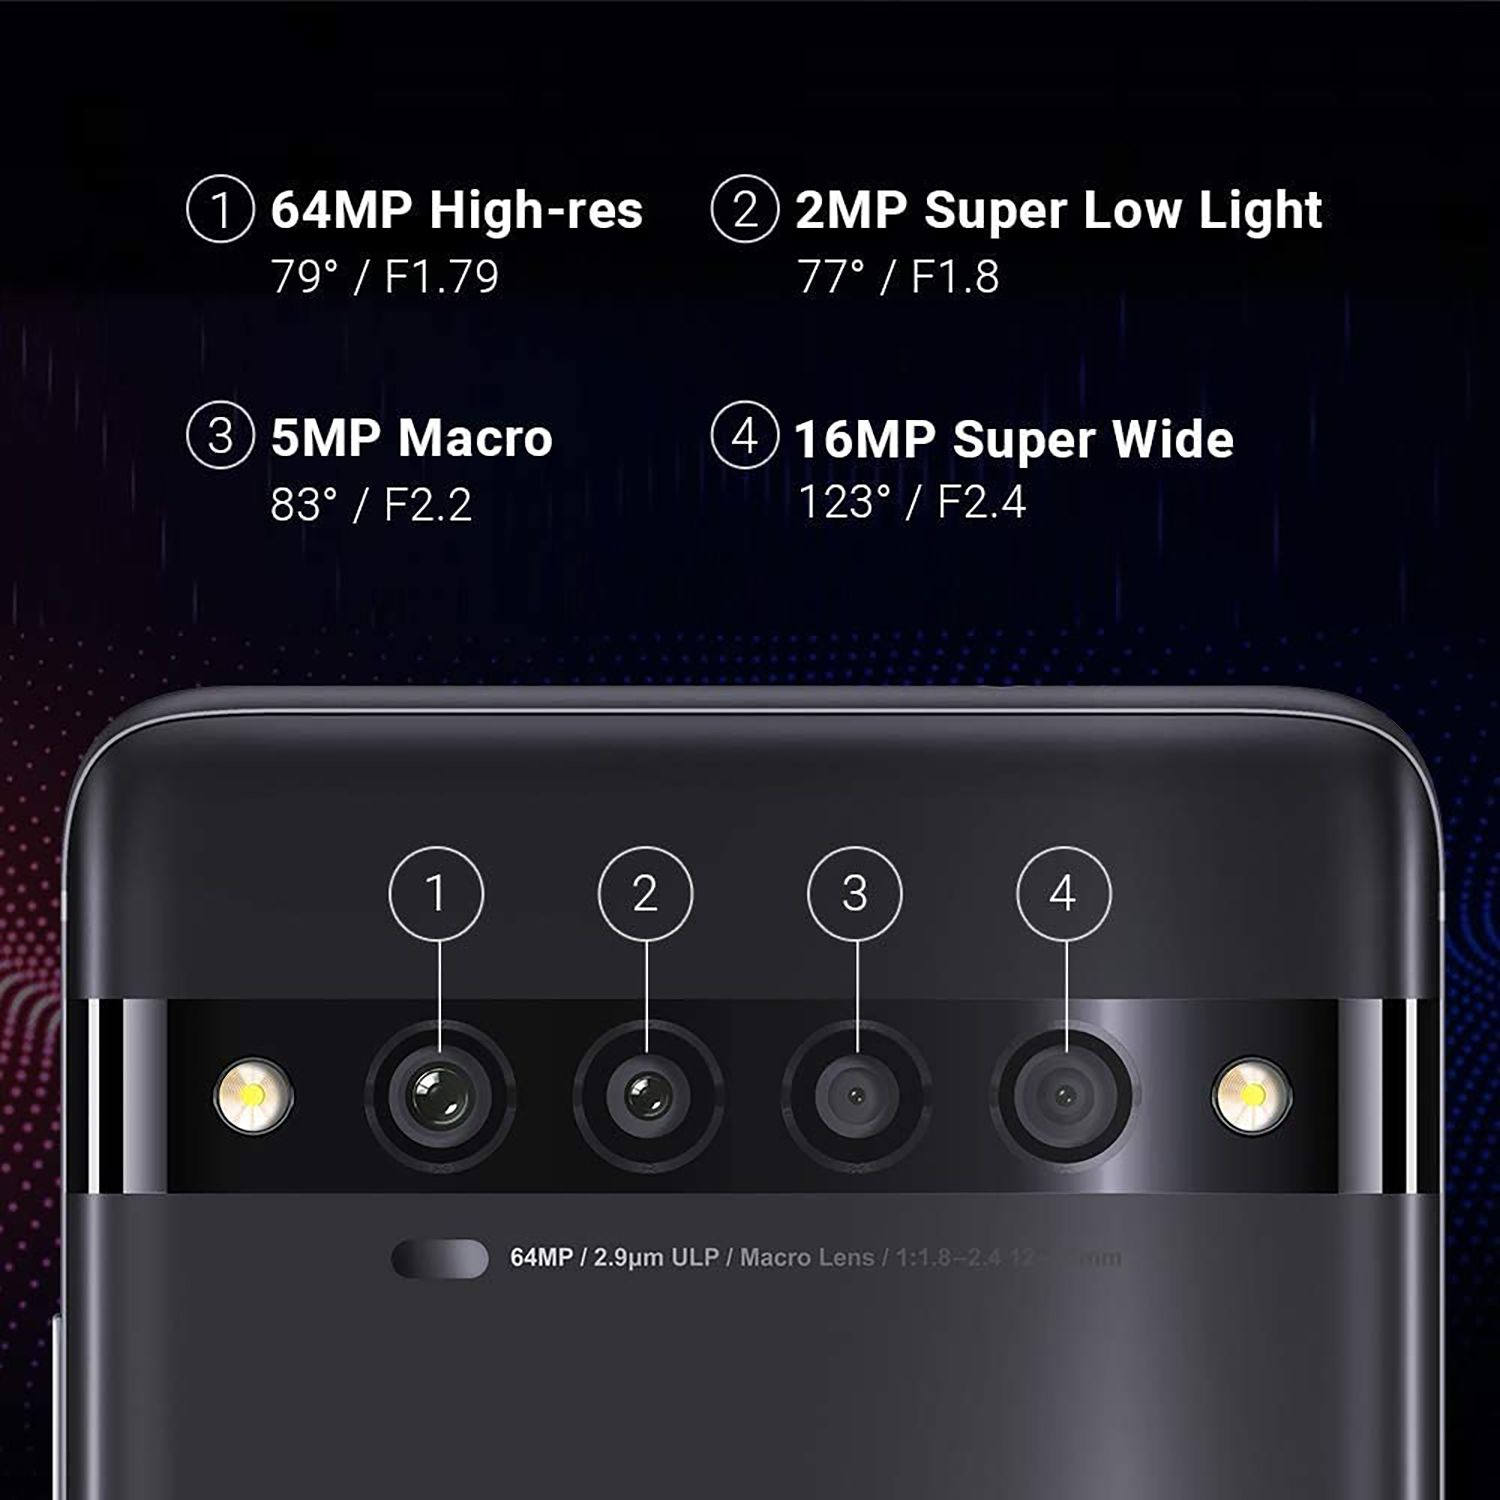 The cameras of the TCL 10 Pro